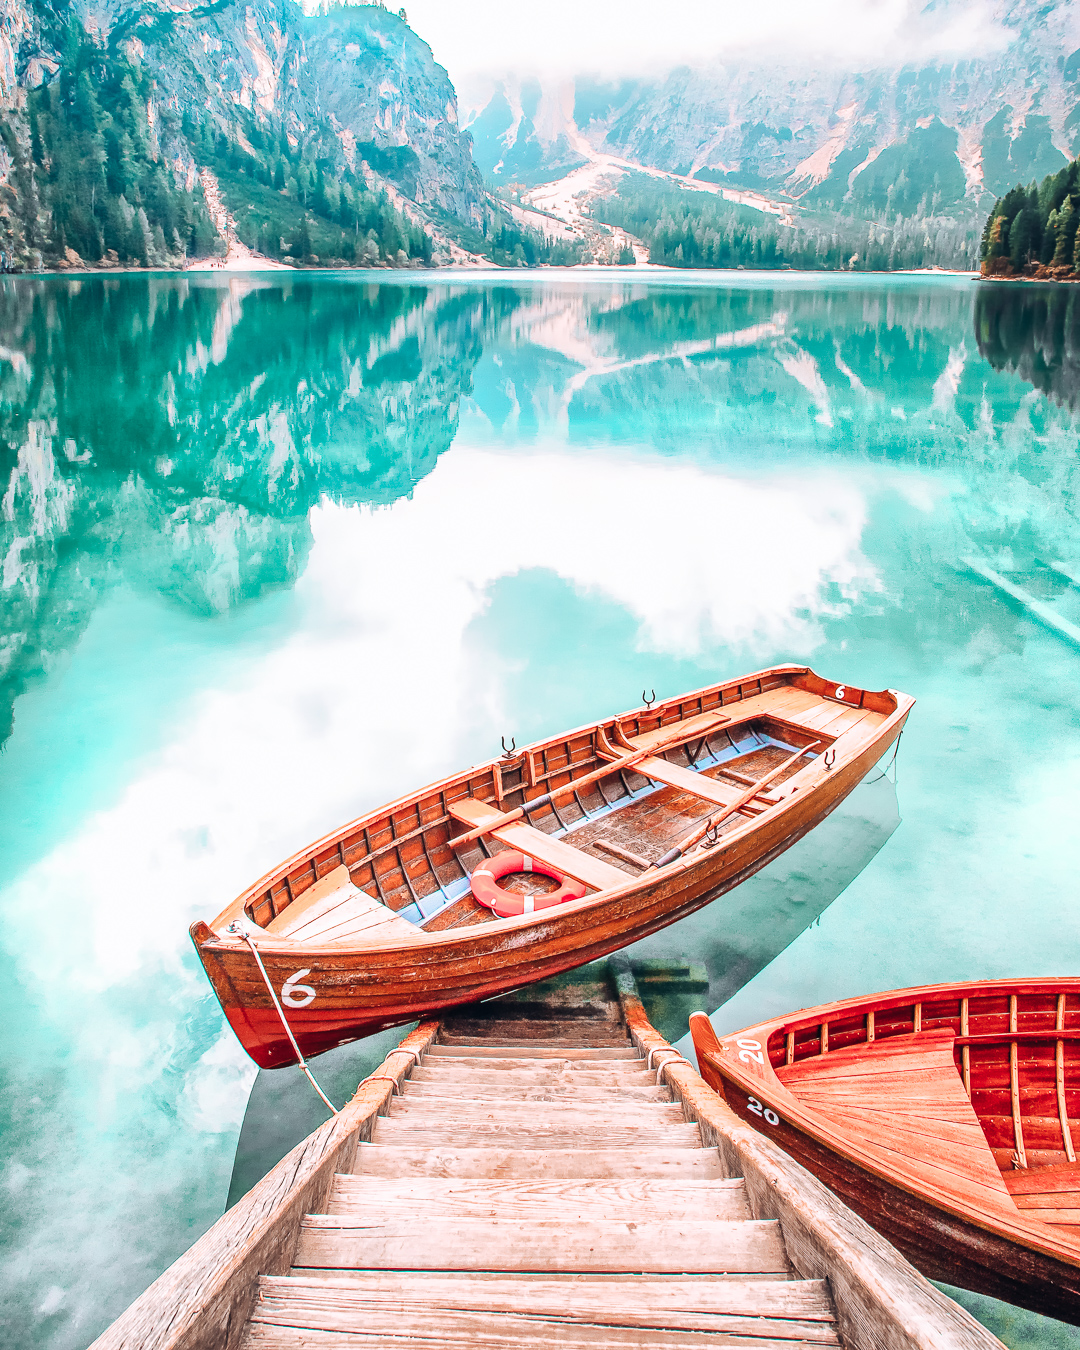 Boat at a beautiful lake in the Dolomites